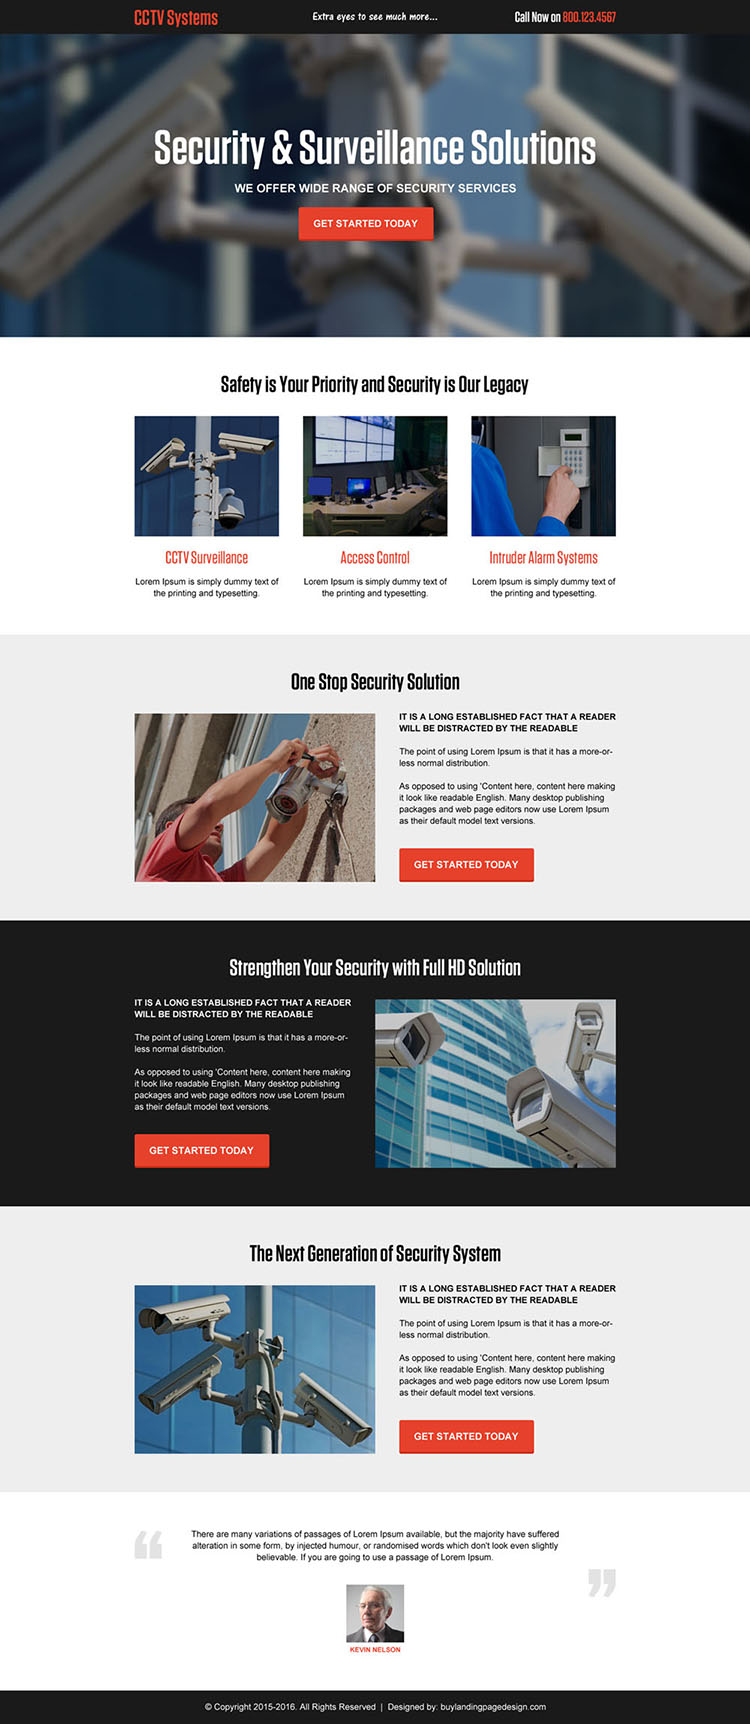 cctv security system solution responsive landing page design